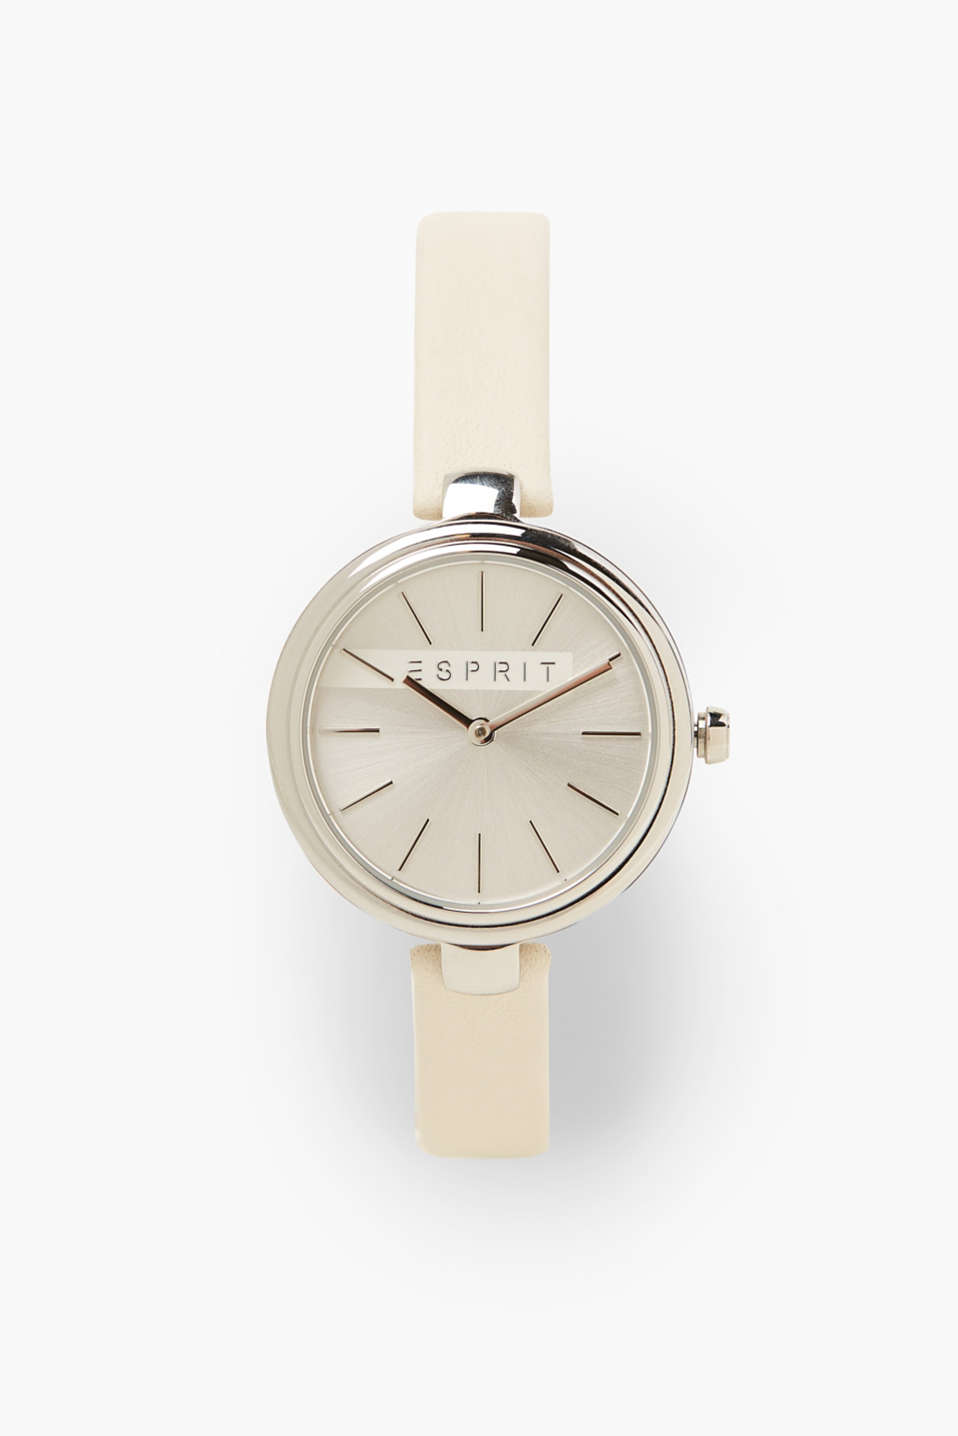 Elegant and minimalistic. This watch features a narrow leather strap and timeless stainless steel casing.